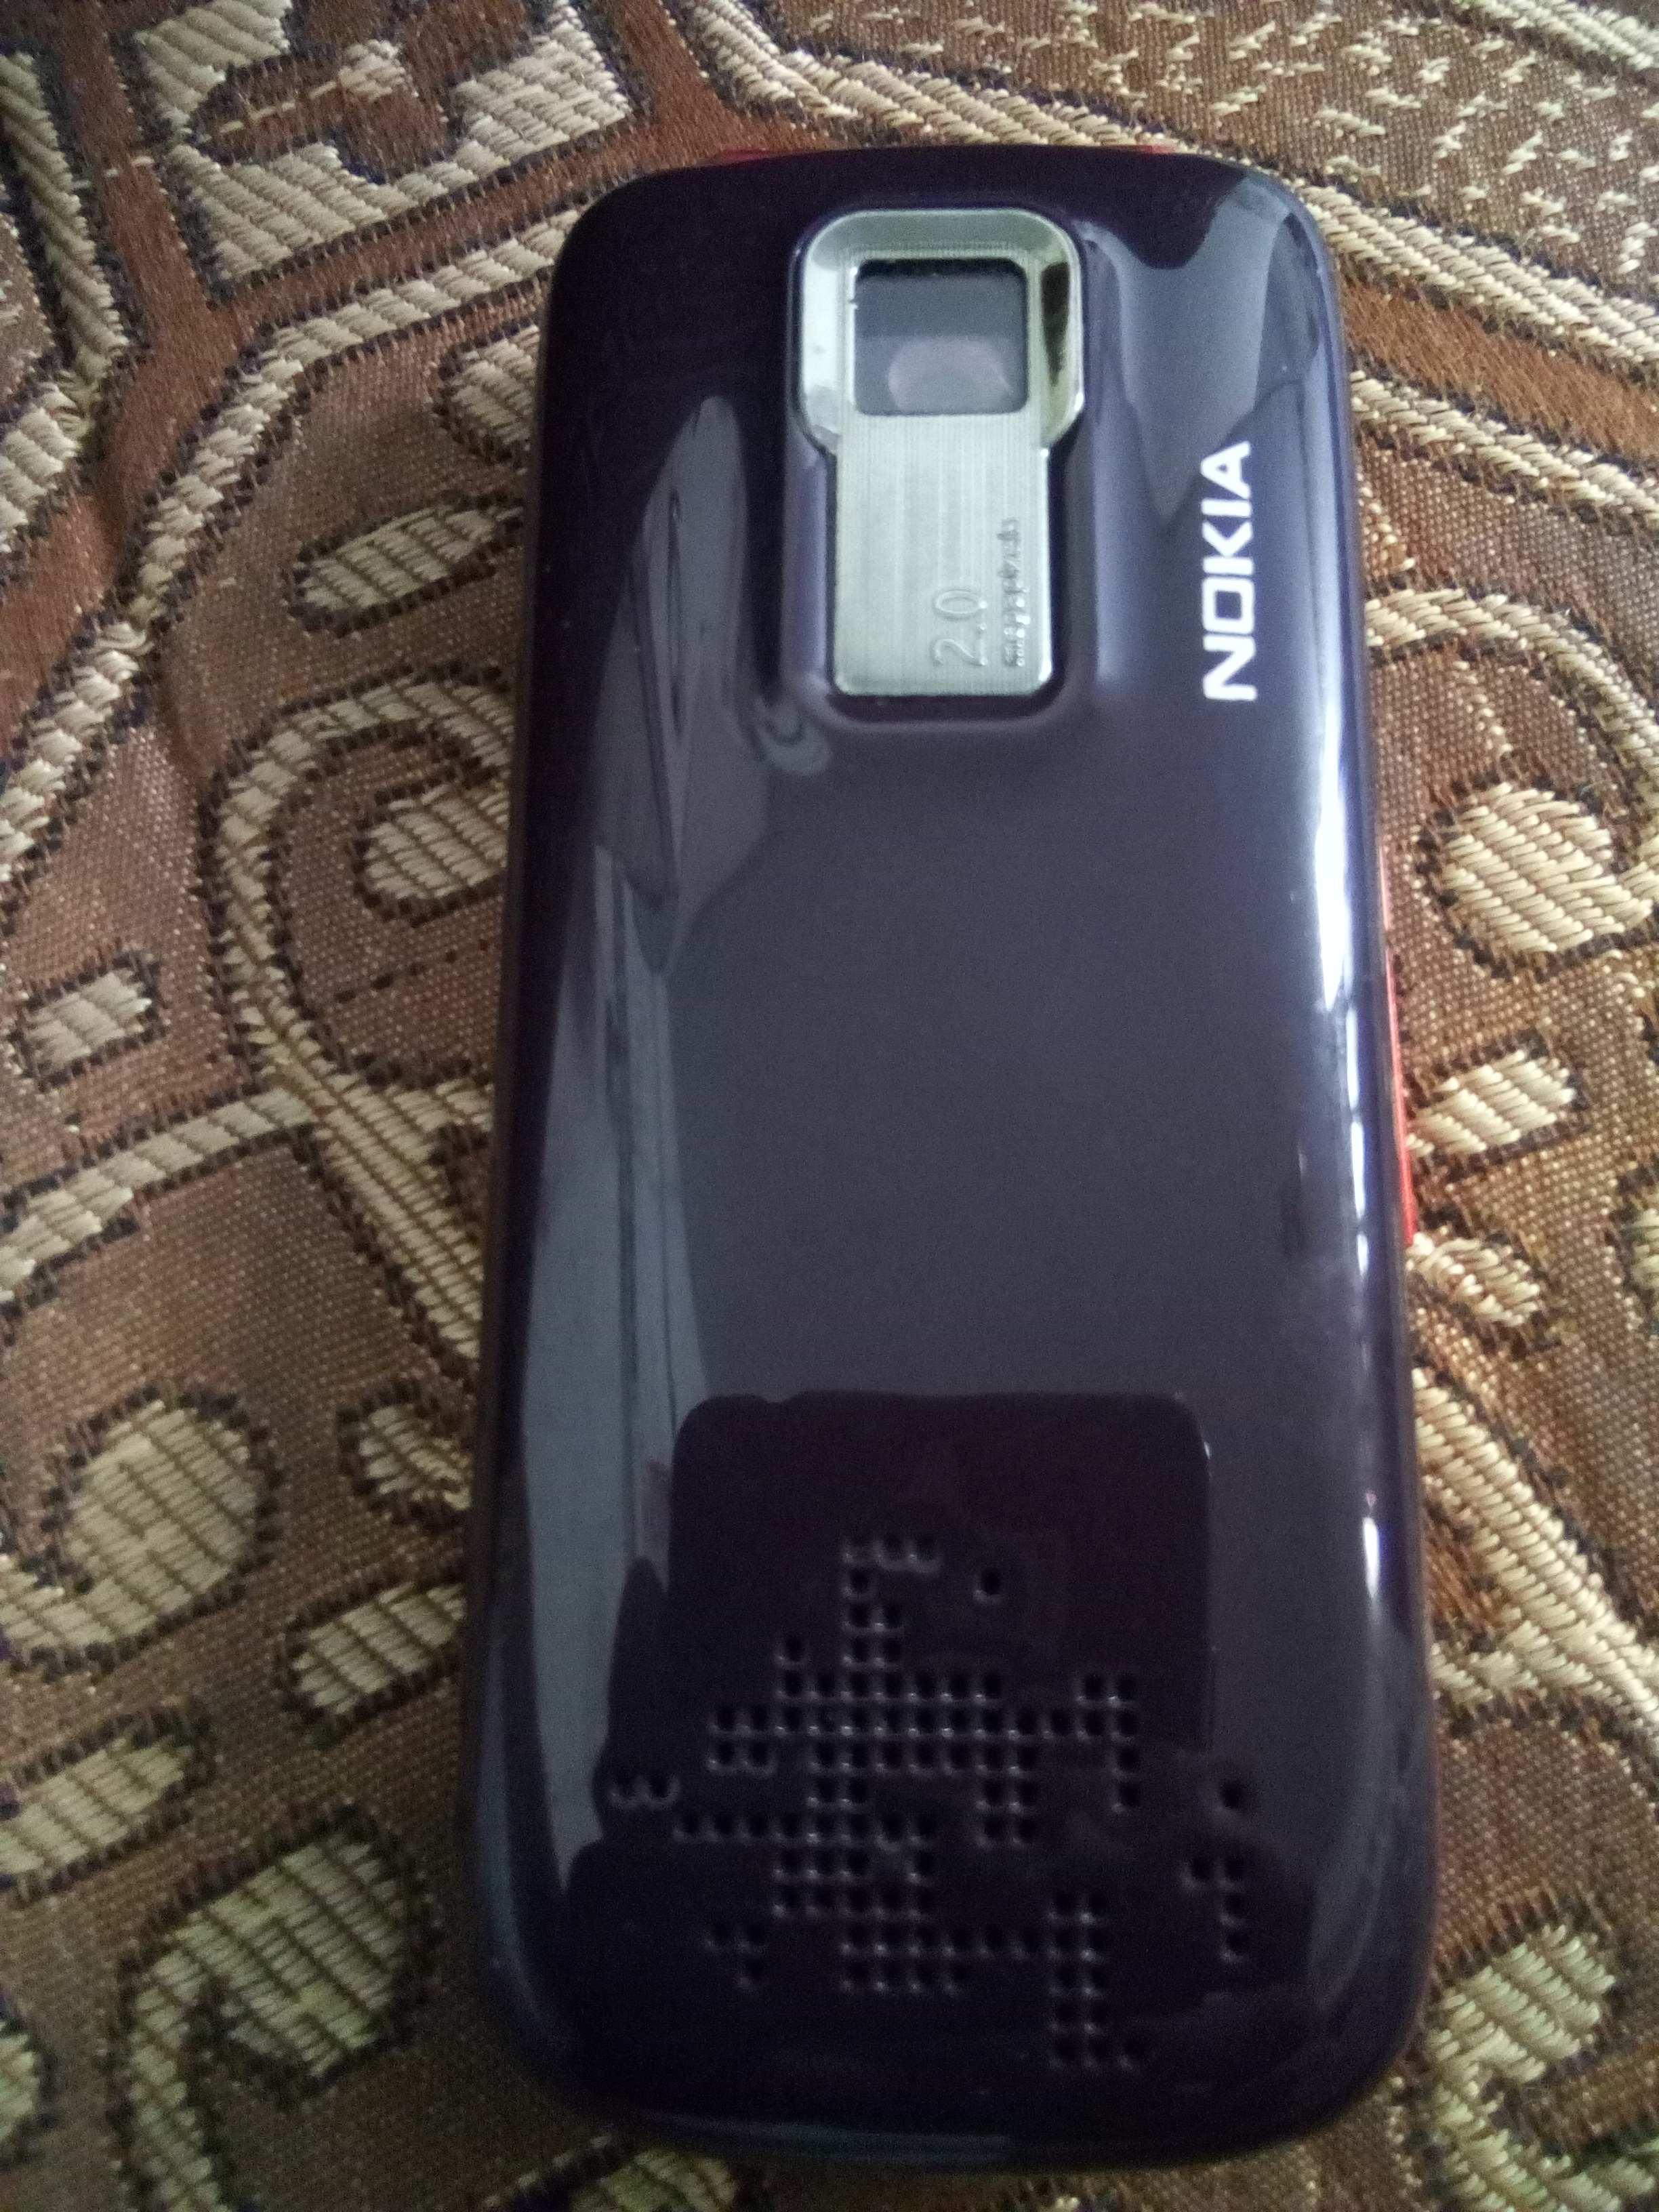 Nokia music express 5130 - photo 2